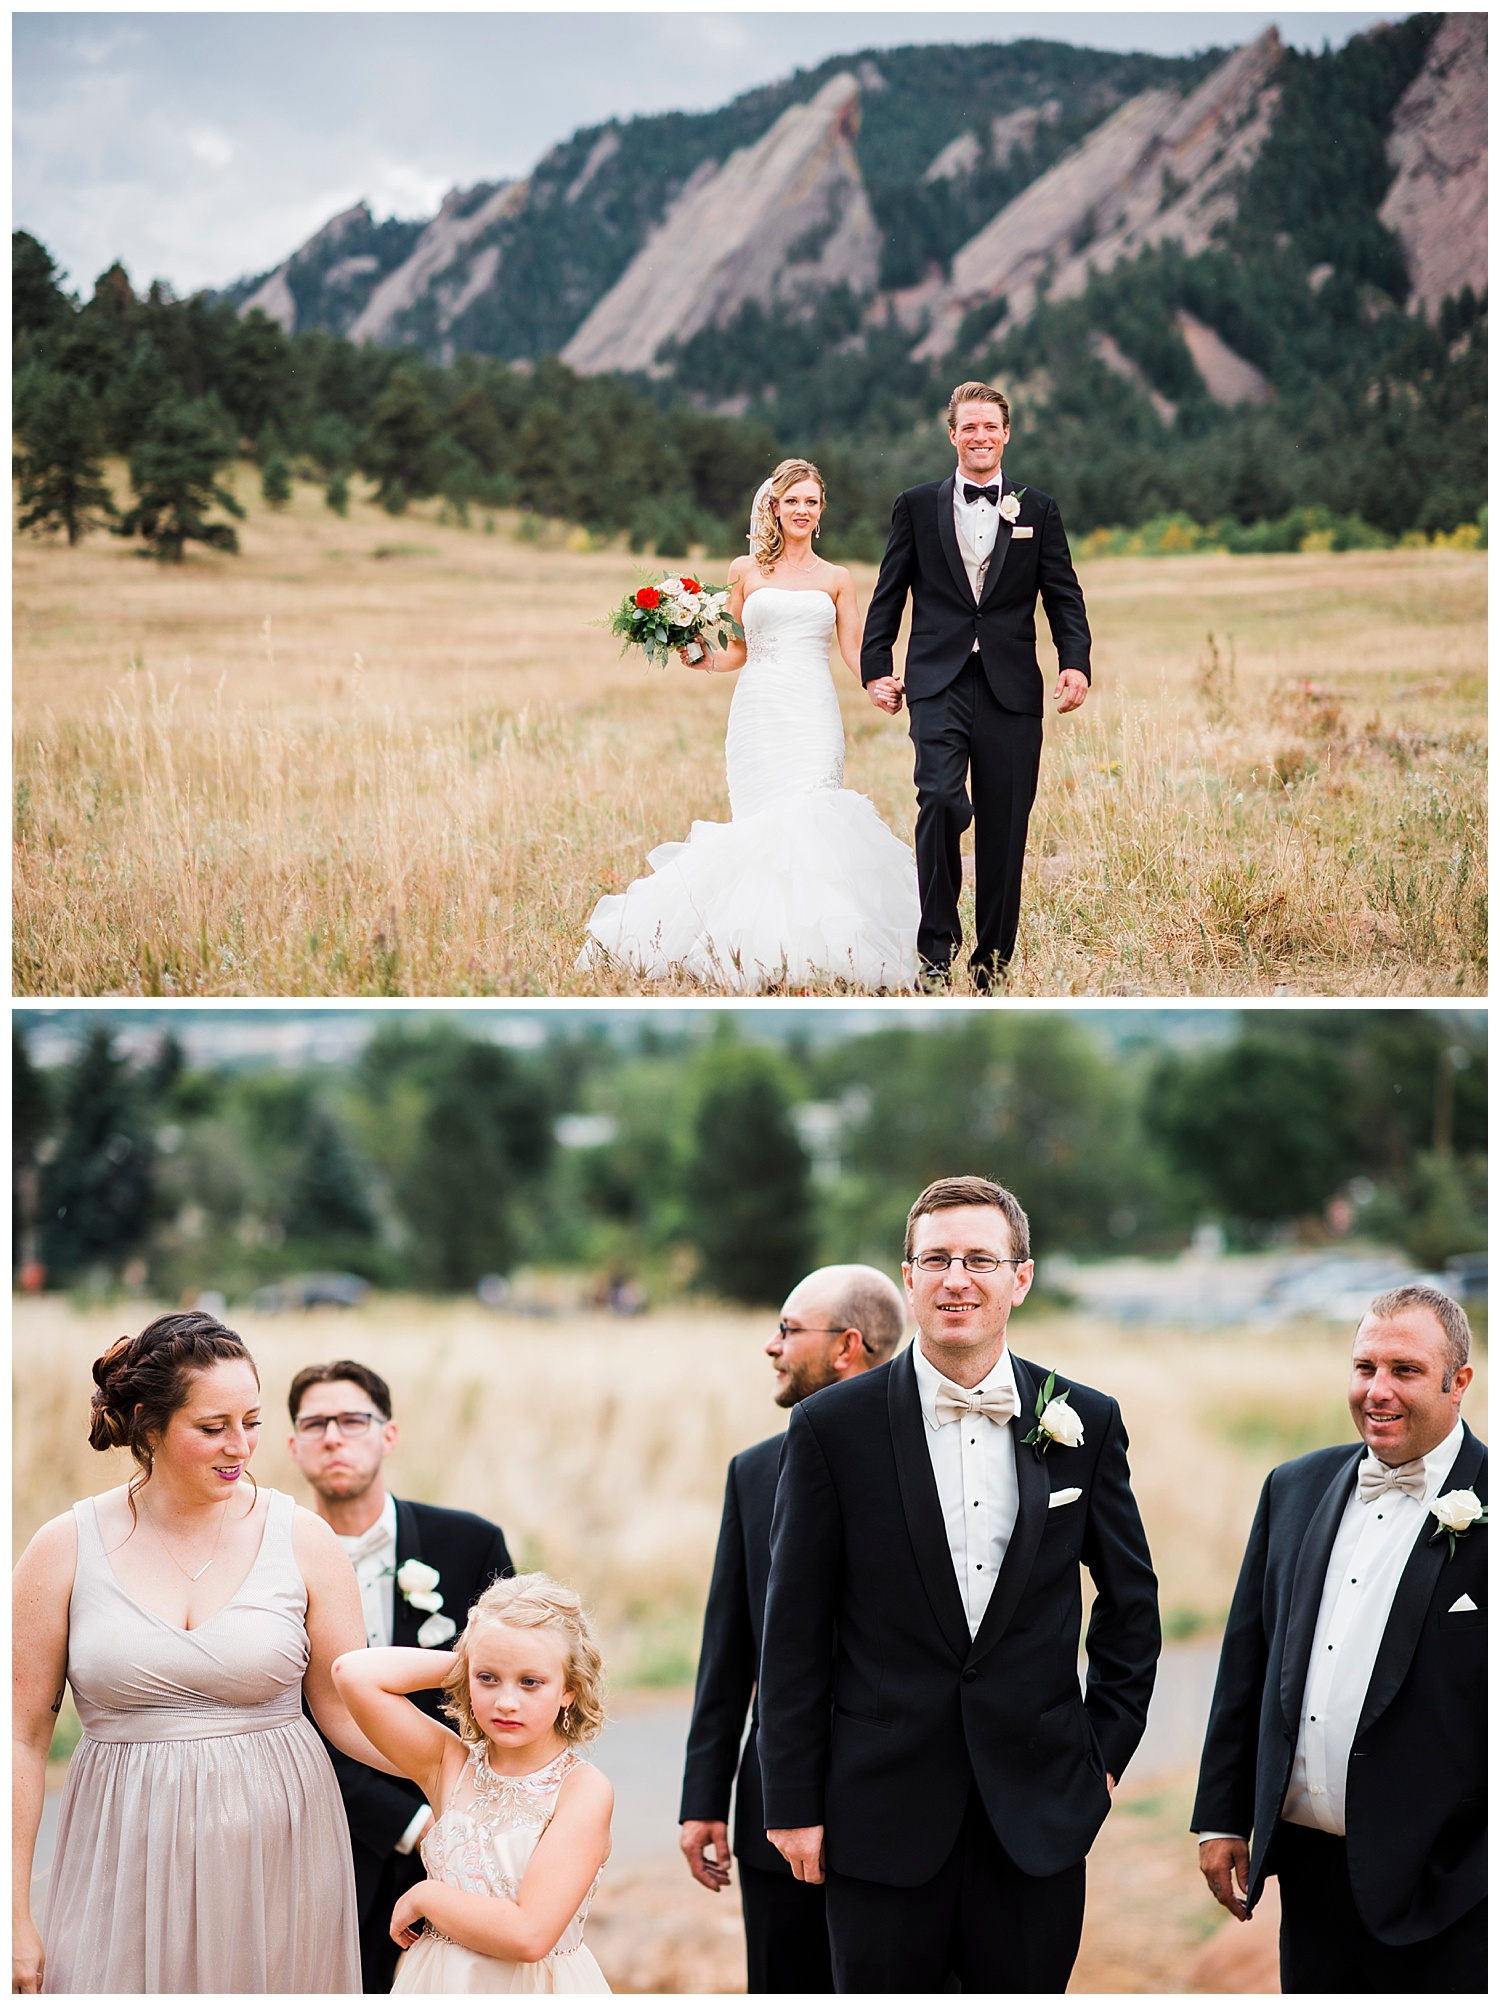 Wedgewood_Boulder_Creek_Wedding_Venue_Colorado_Photographer_Apollo_Fields_013.jpg